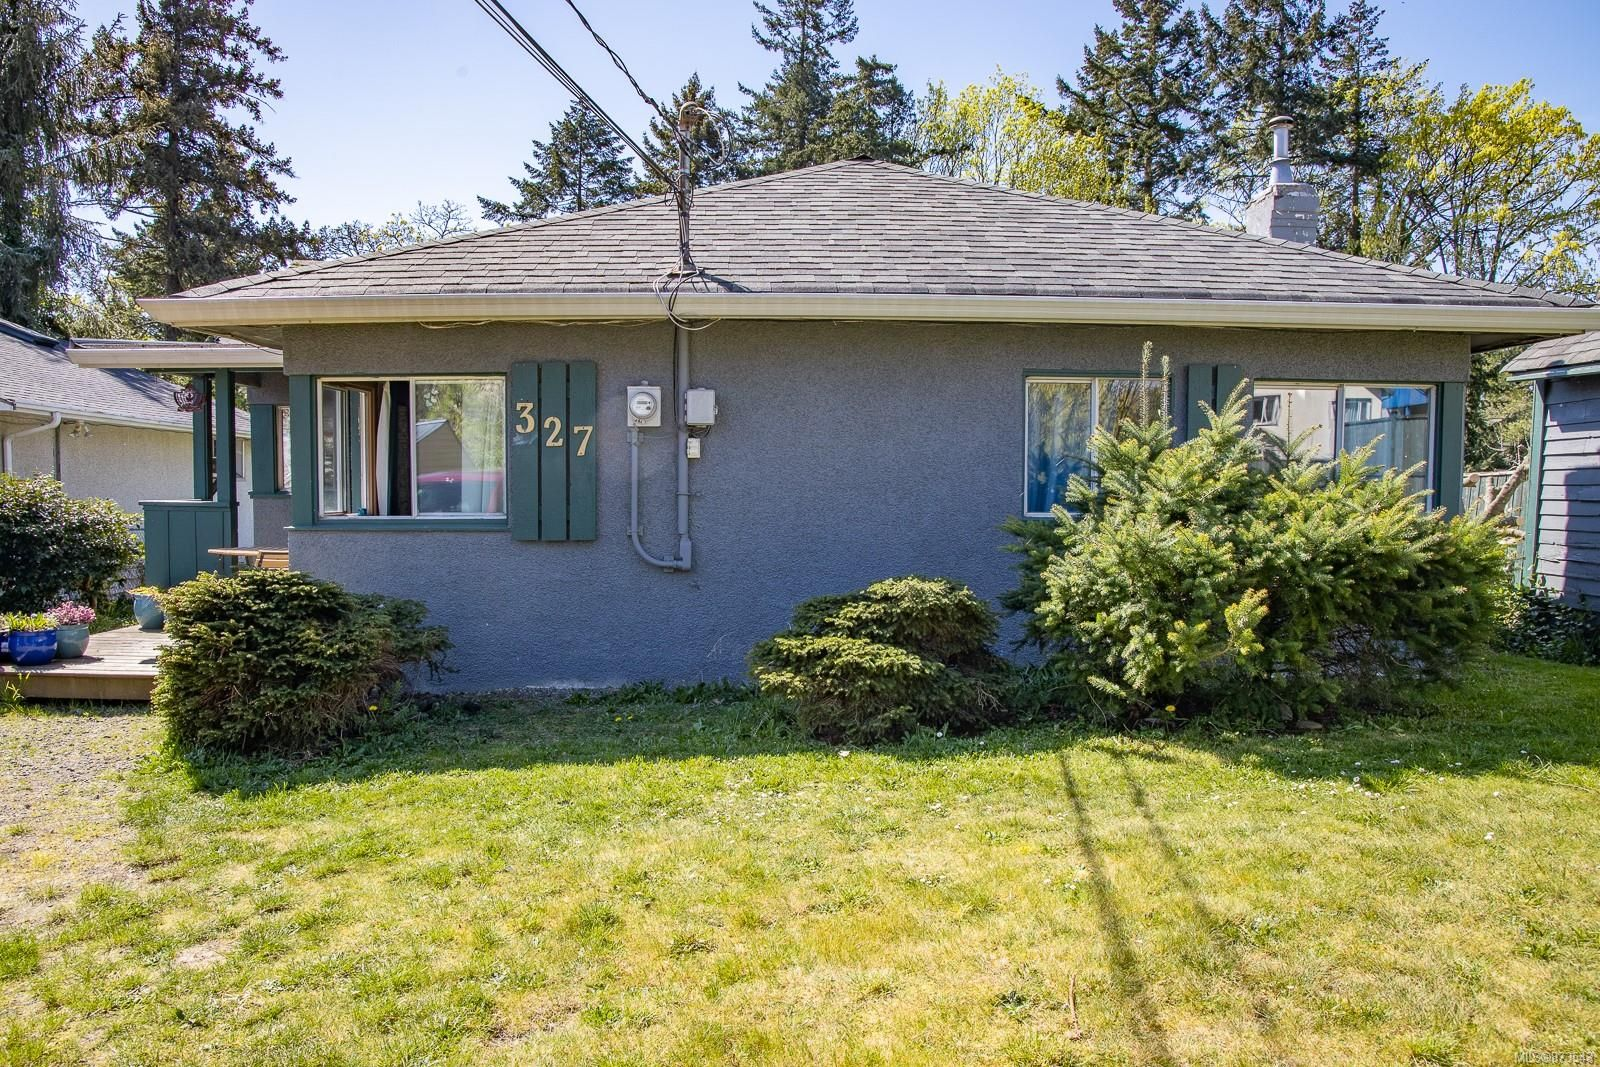 Main Photo: 327 St. George St in : Na Central Nanaimo House for sale (Nanaimo)  : MLS®# 873543